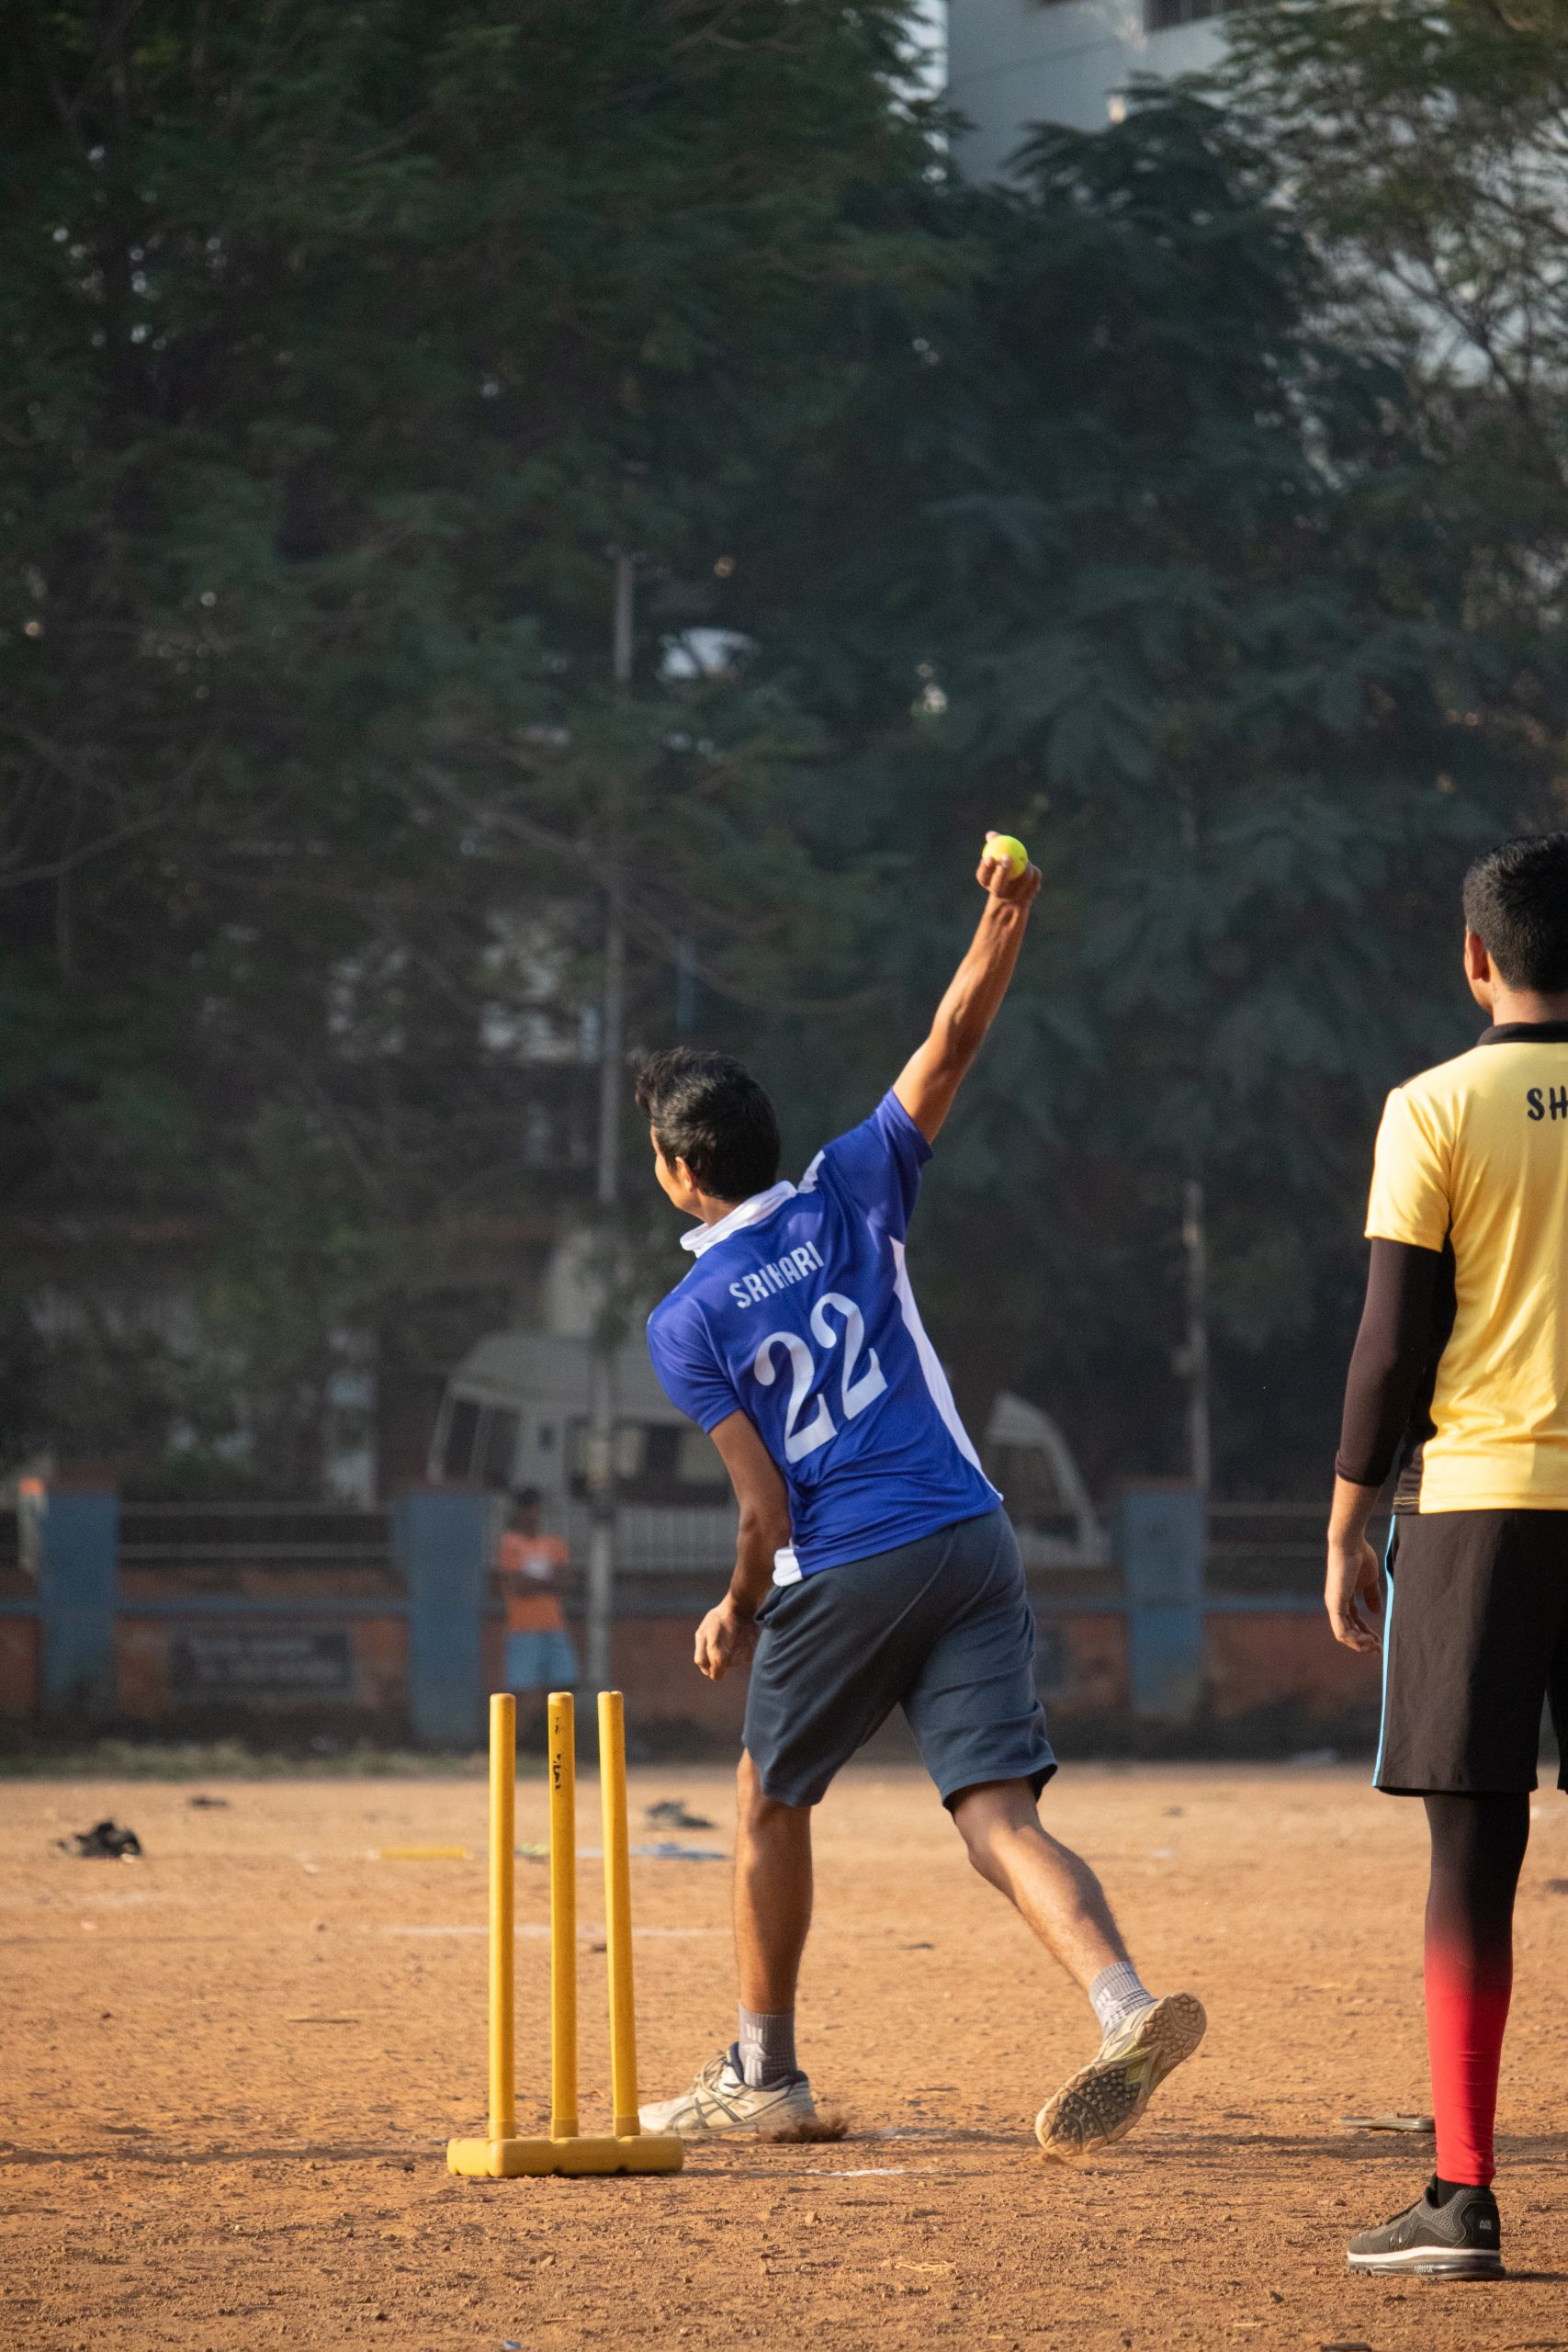 Bowler About to bowl a ball